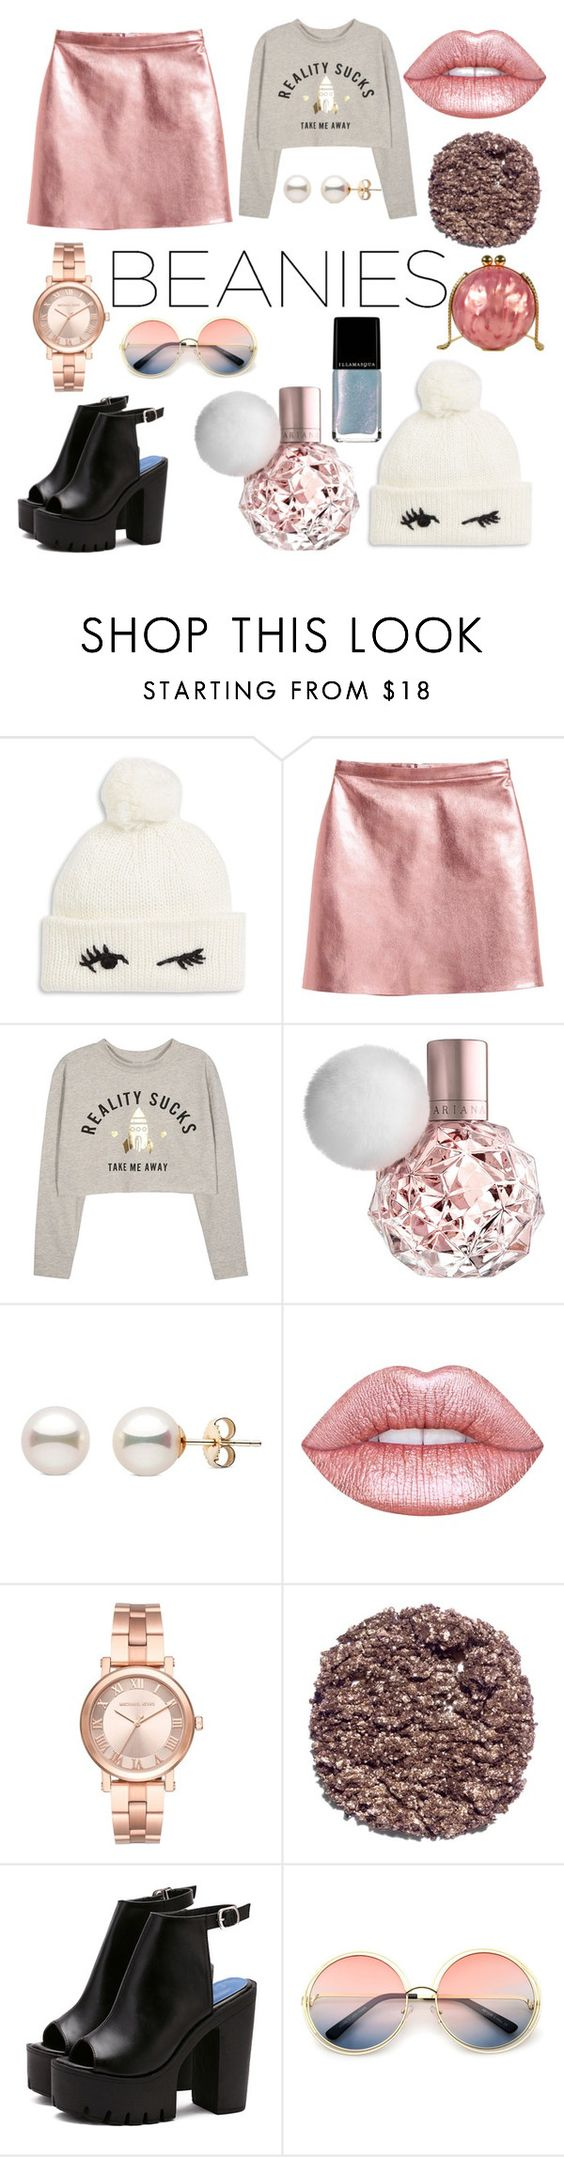 """Untitled #187"" by presidentofunicorns ❤ liked on Polyvore featuring Kate Spade, Lime Crime, Michael Kors, Illamasqua and ZeroUV"